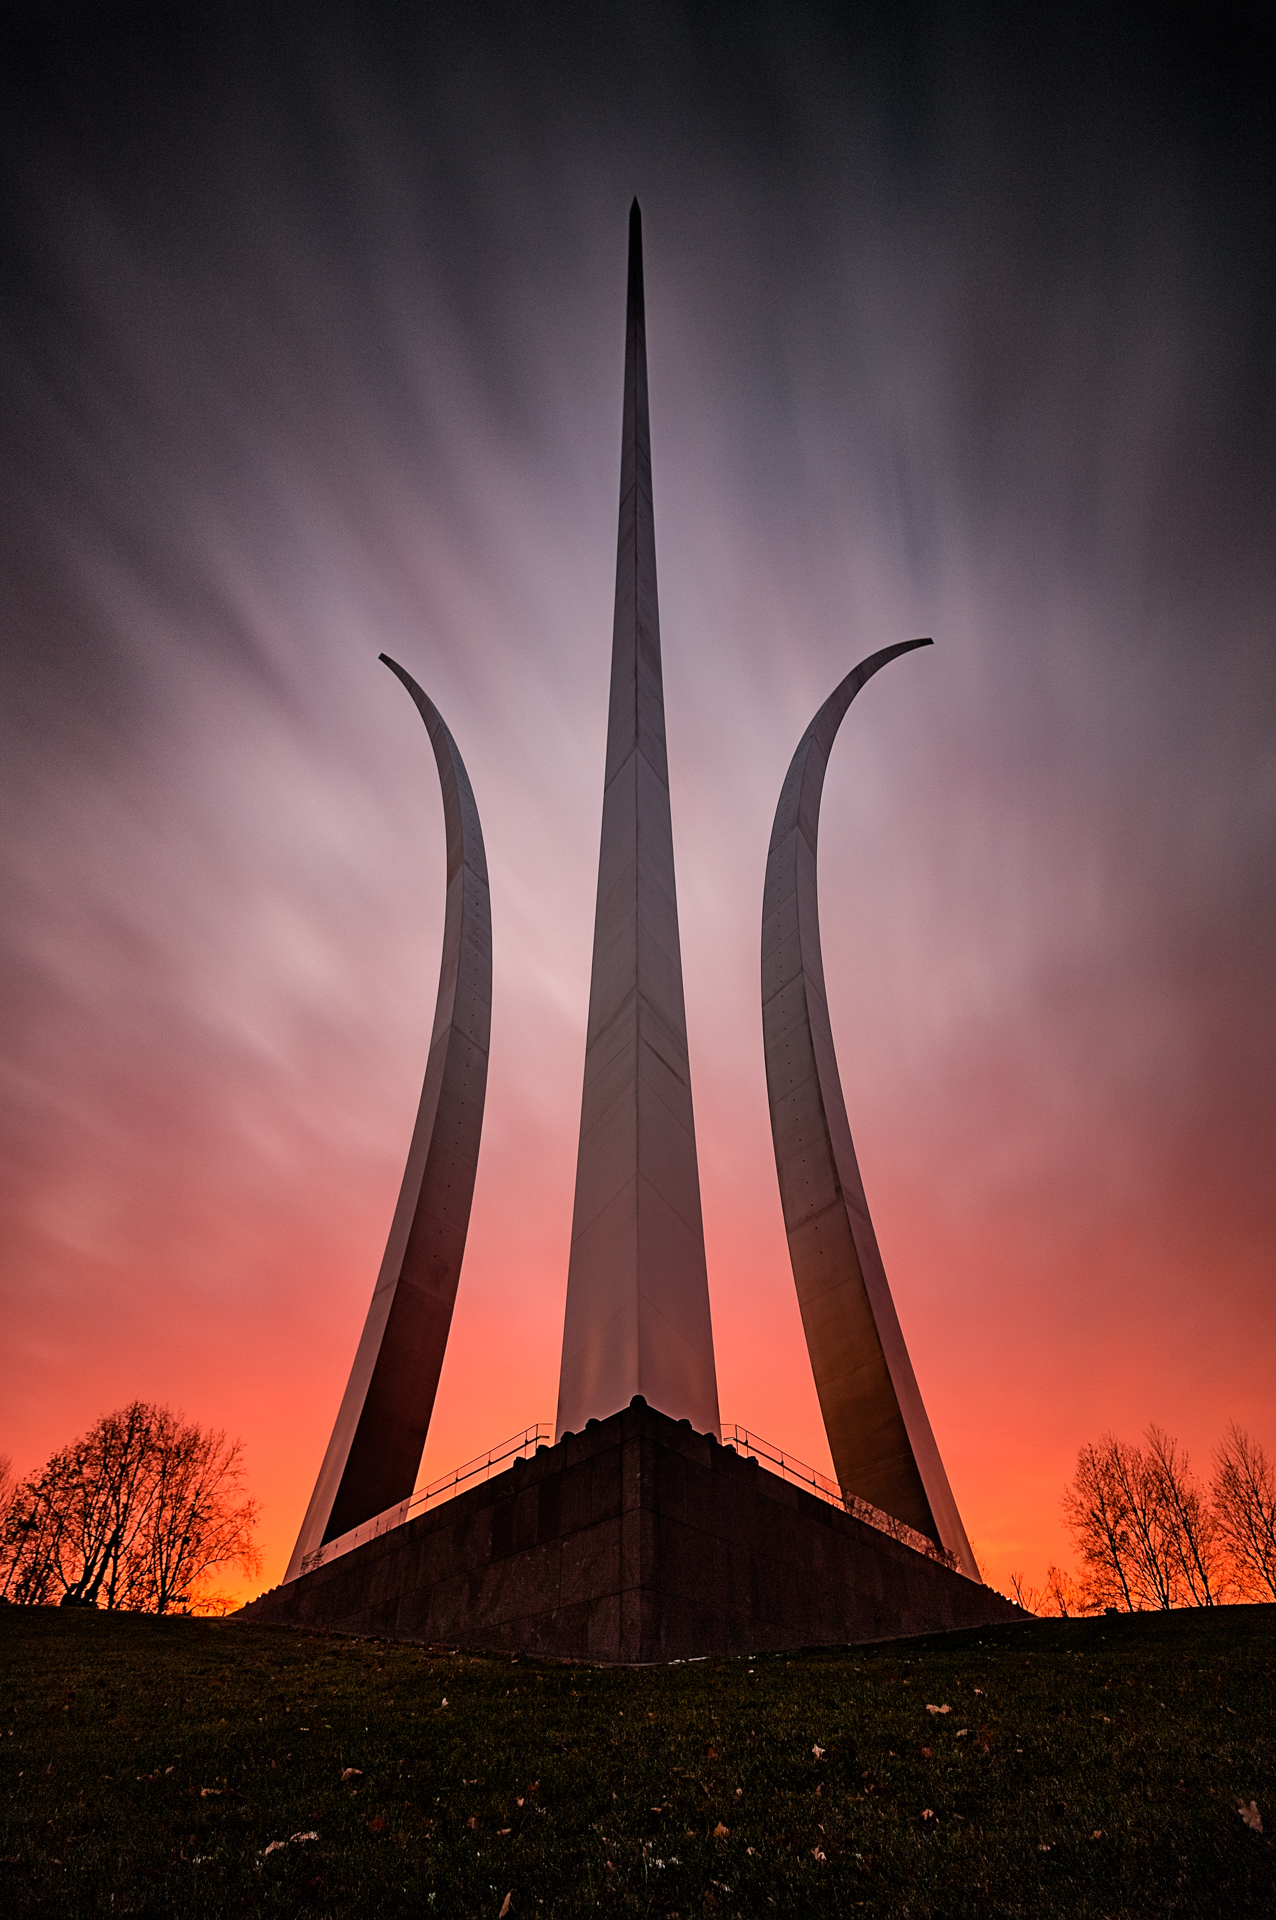 To the Limit – An incredible sunset glows behind the Airforce Memorial{&amp;nbsp;} (Image: Zack Lewkowicz)<p></p>